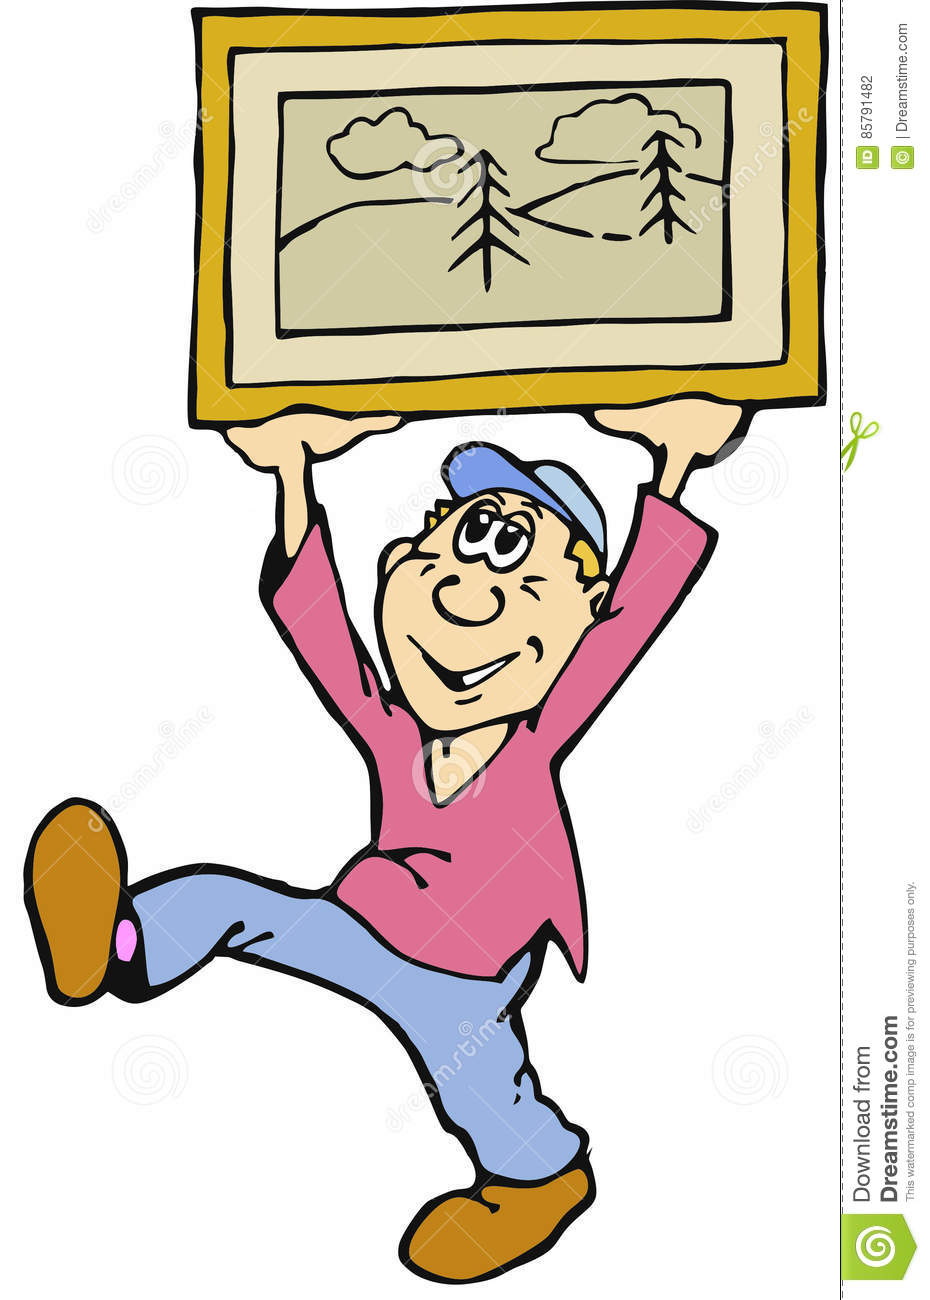 Cartoon Man with Framed Picture